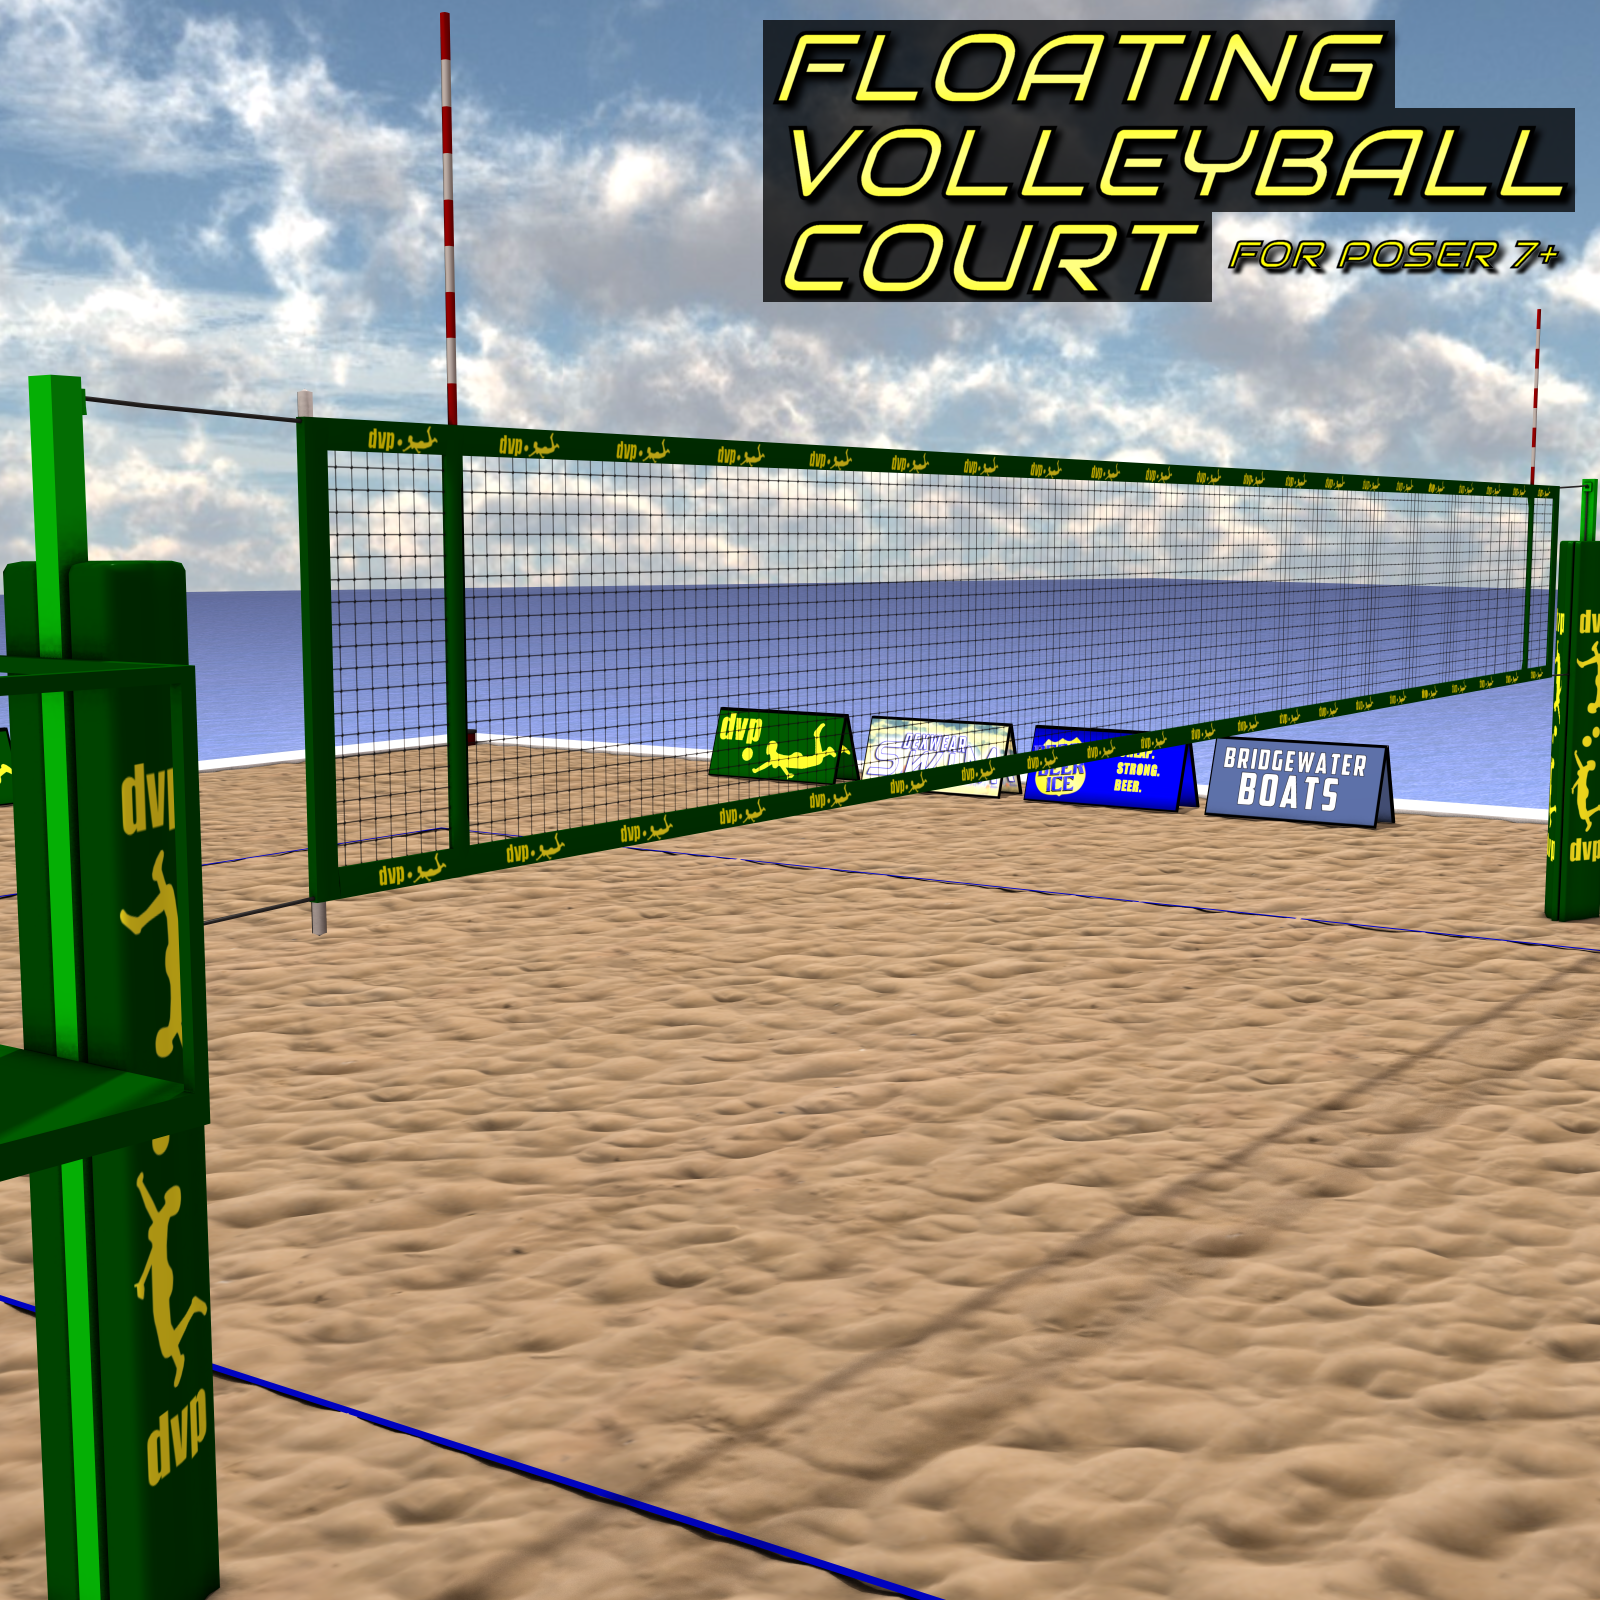 Floating Volleyball Court by DexPac